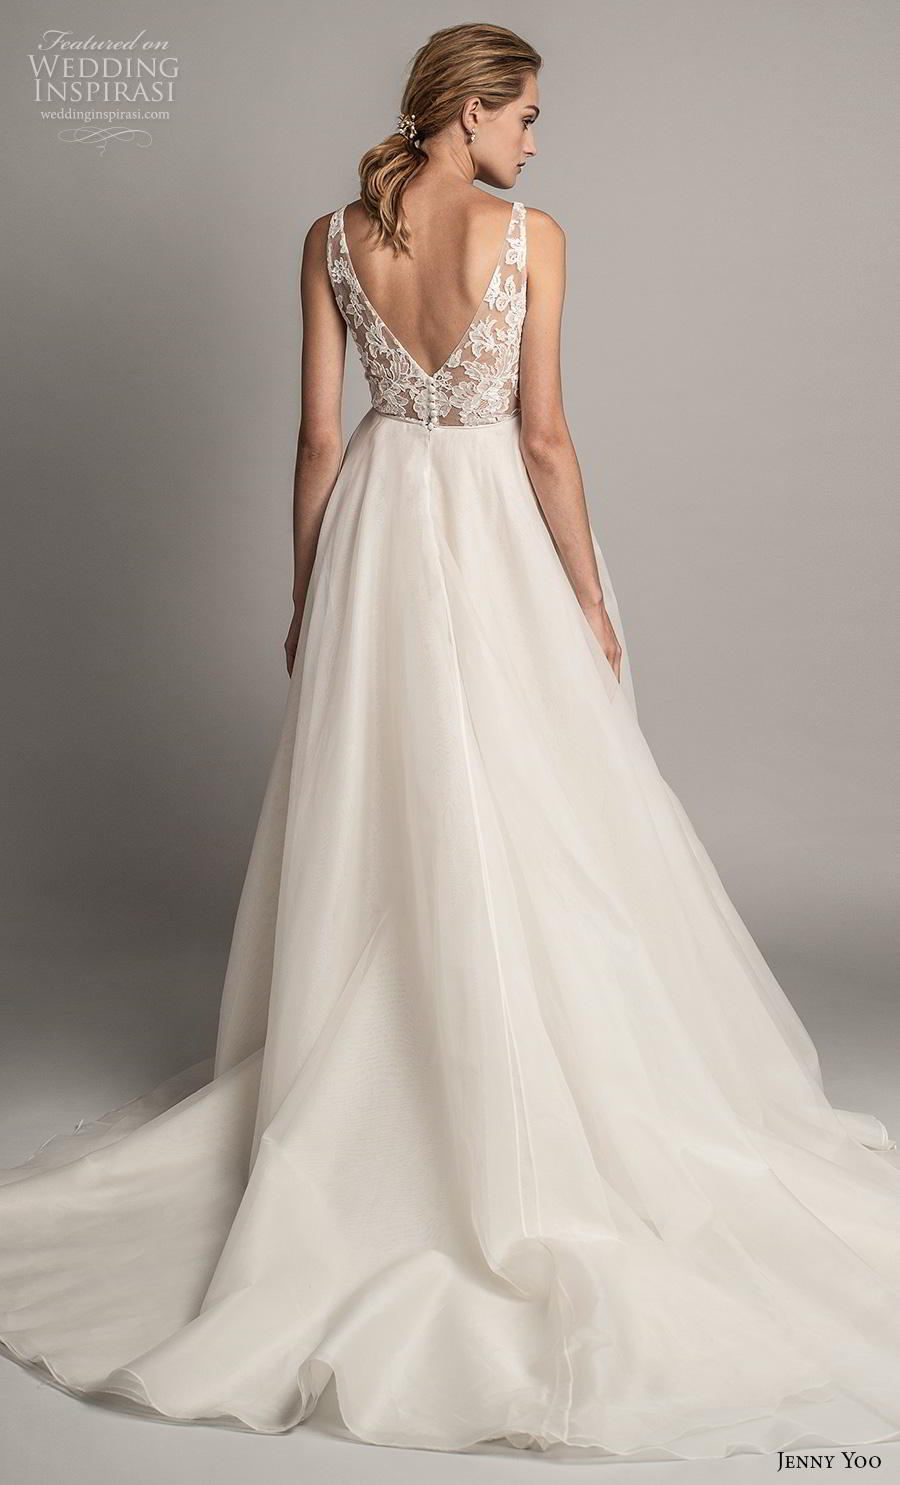 jenny yoo spring 2019 bridal sleeveless with strap deep v neck heavily embellished bodice tiered skirt romantic ball gown a  line wedding dress backless v back chapel train (7) bv